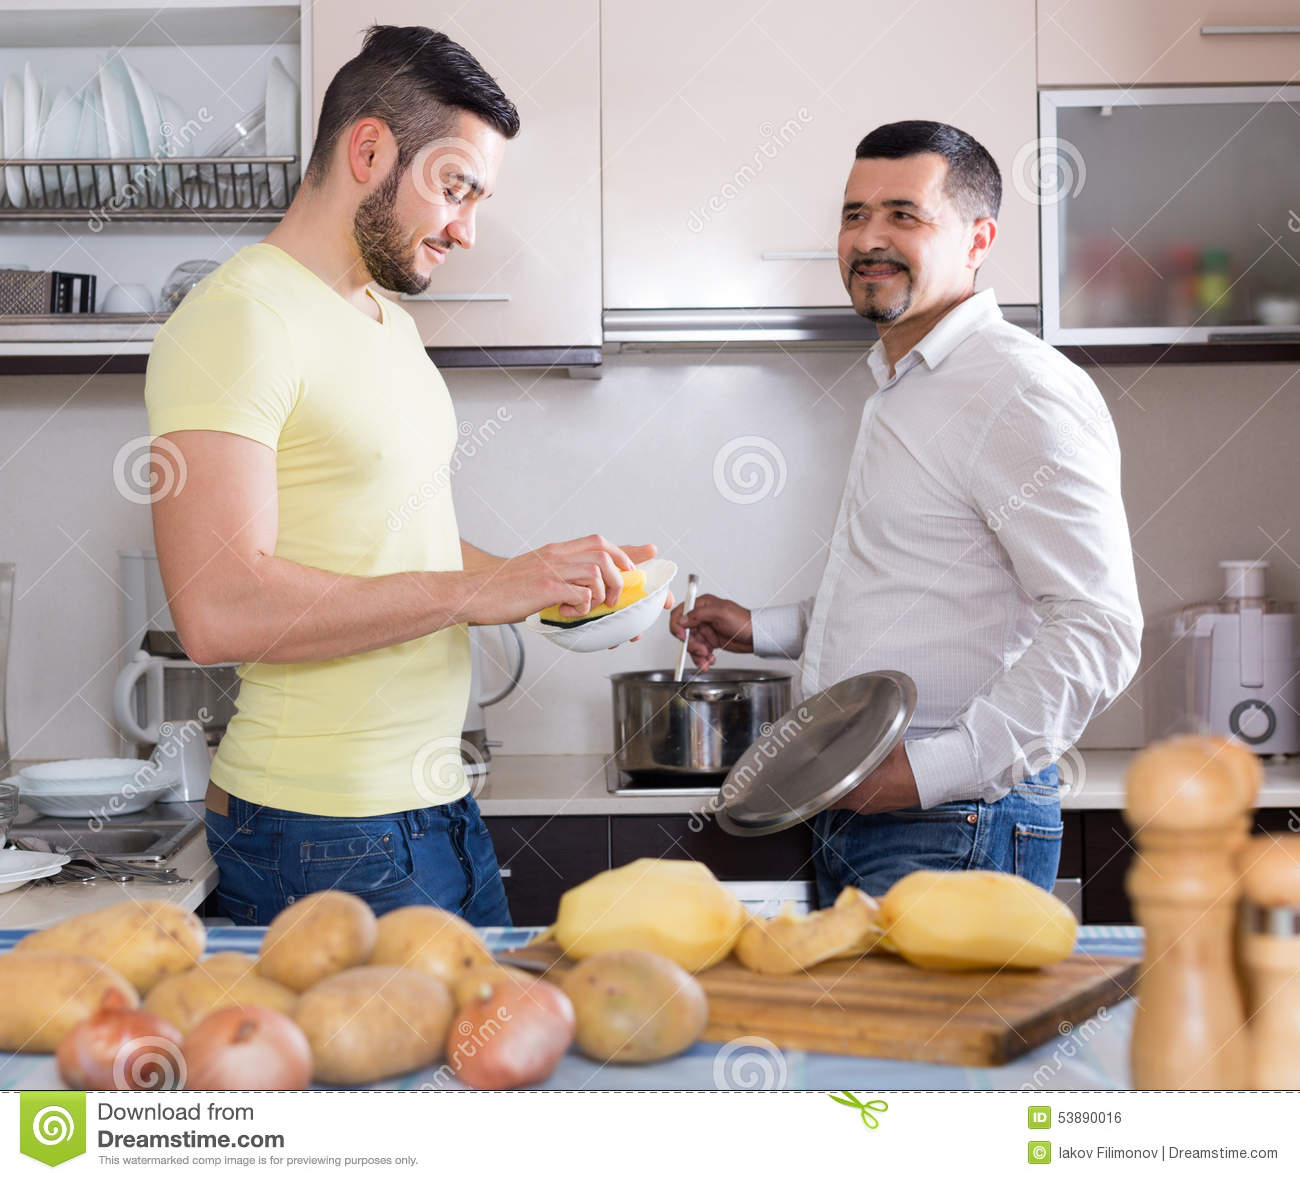 Related Keywords & Suggestions for Men Cooking